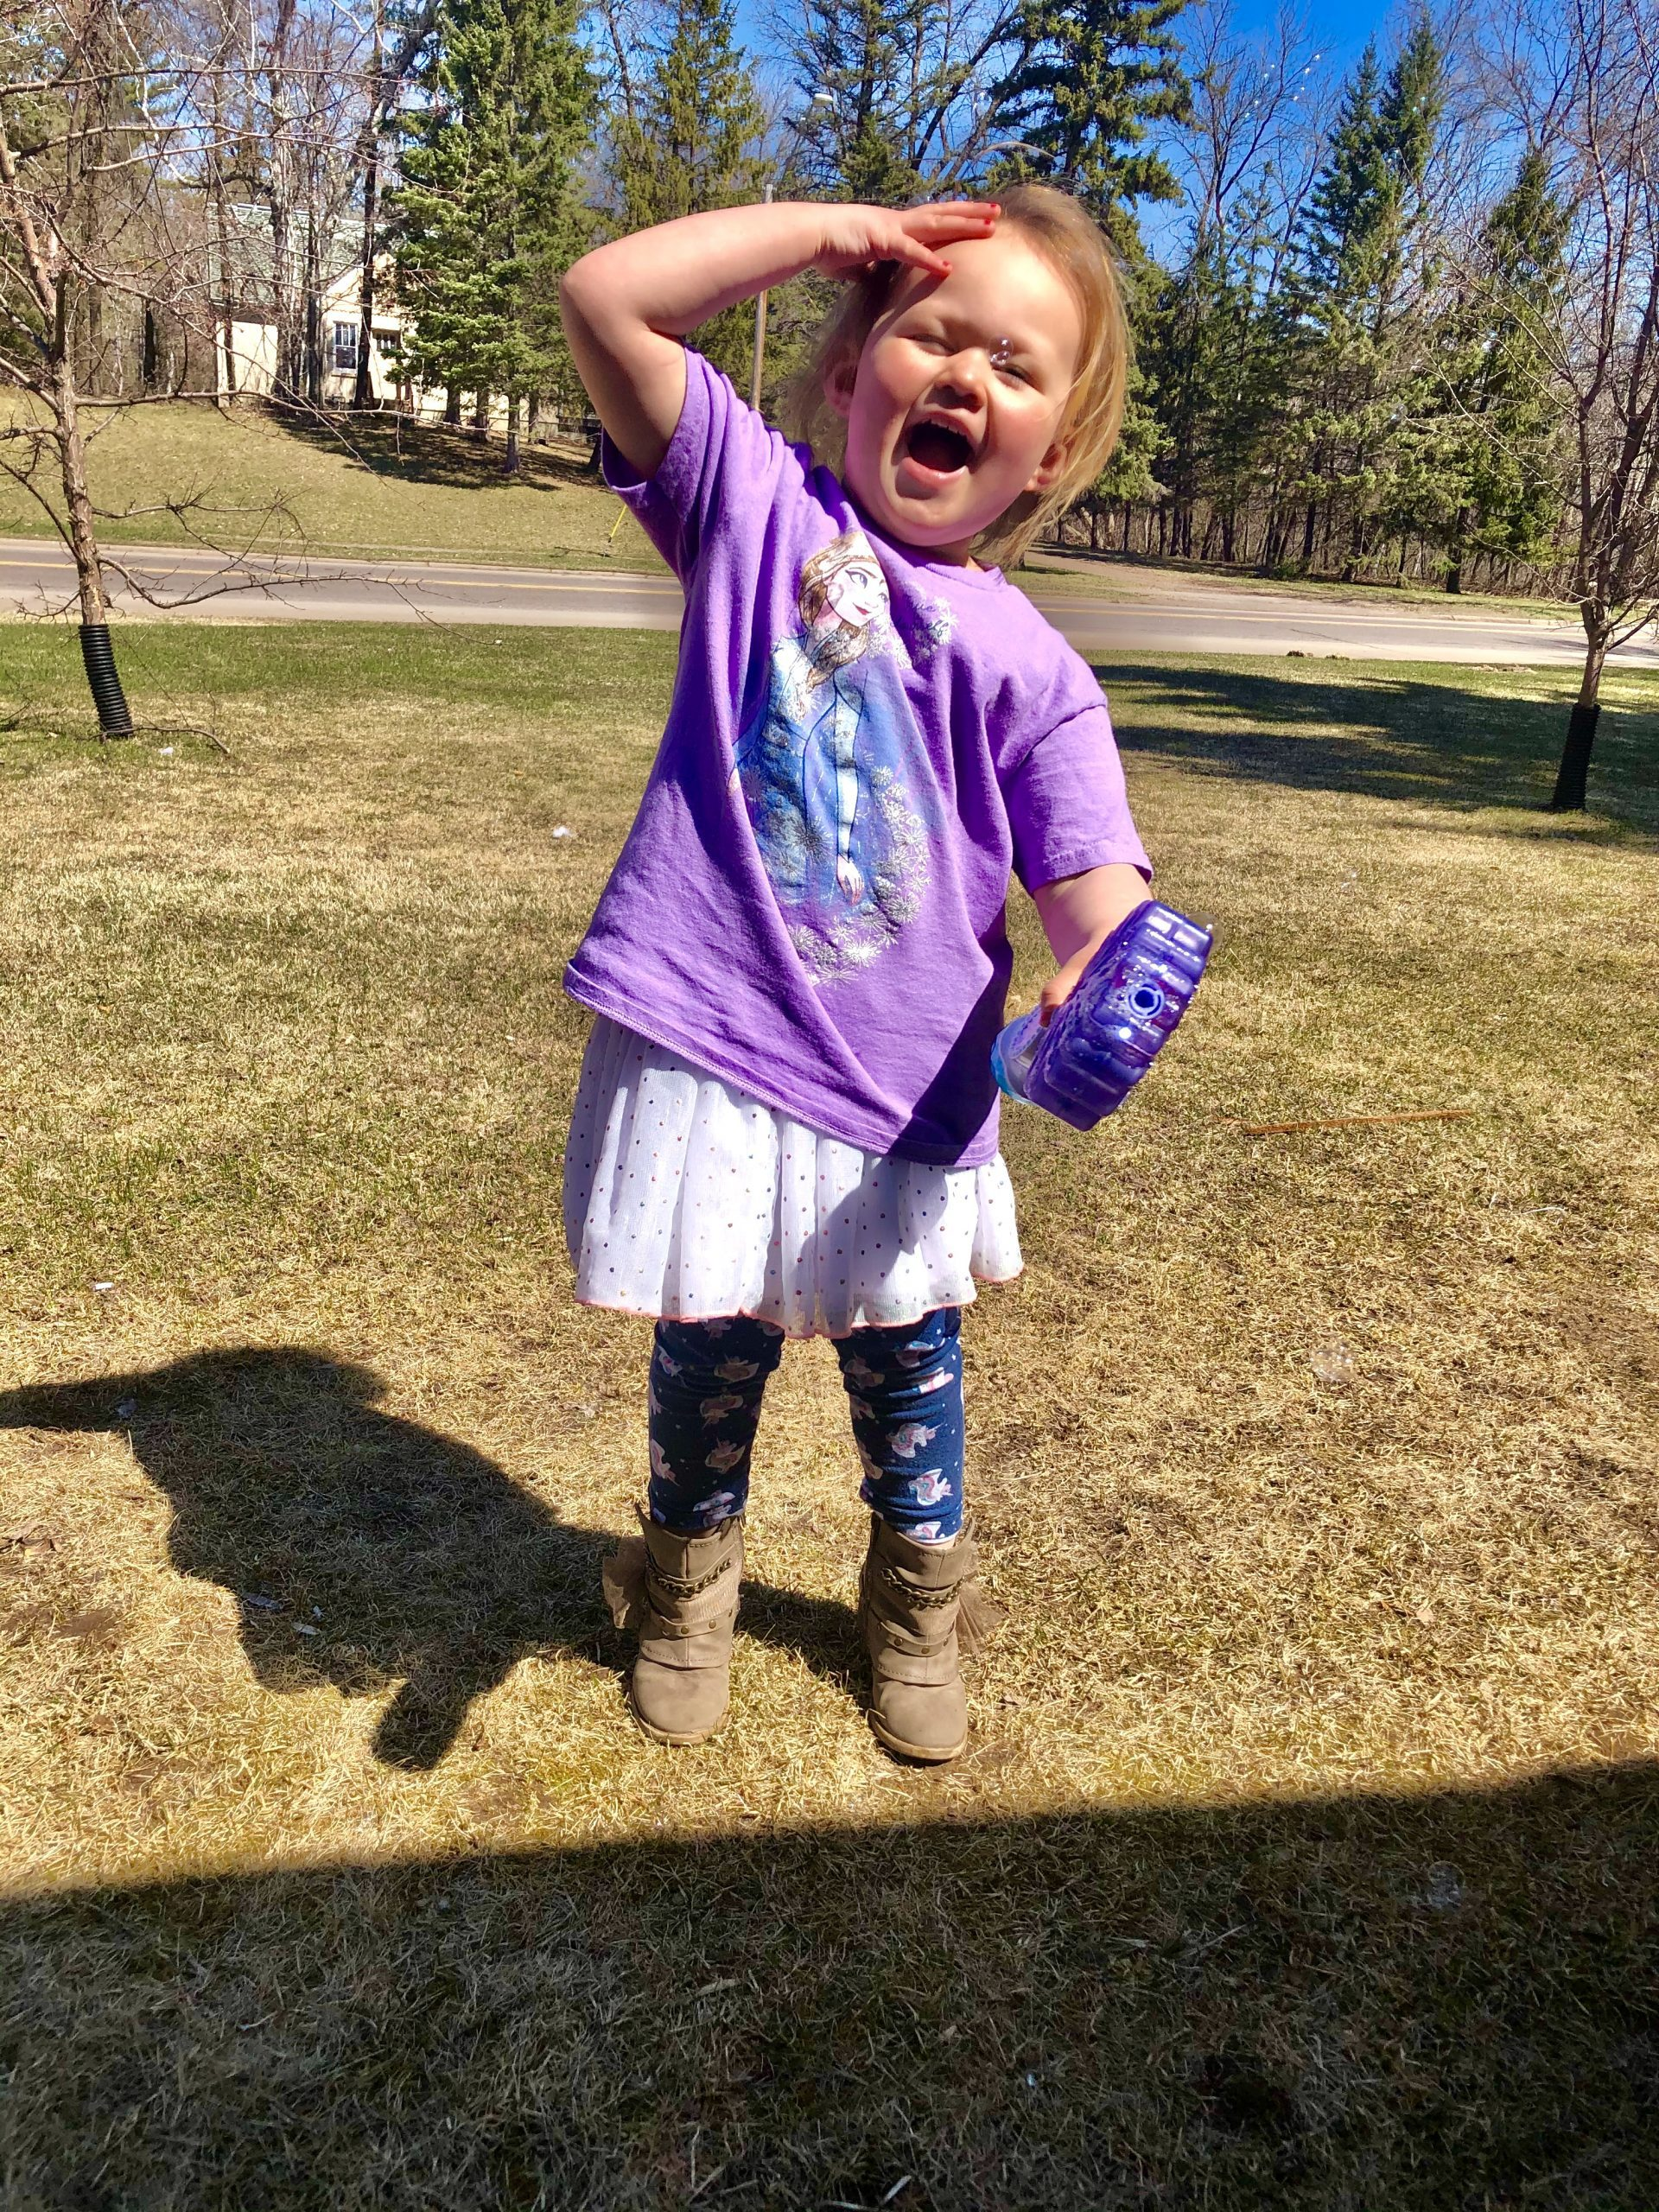 What Would Happen if You Lived with the Confidence of a 3-Year-Old? | Duluth Mom